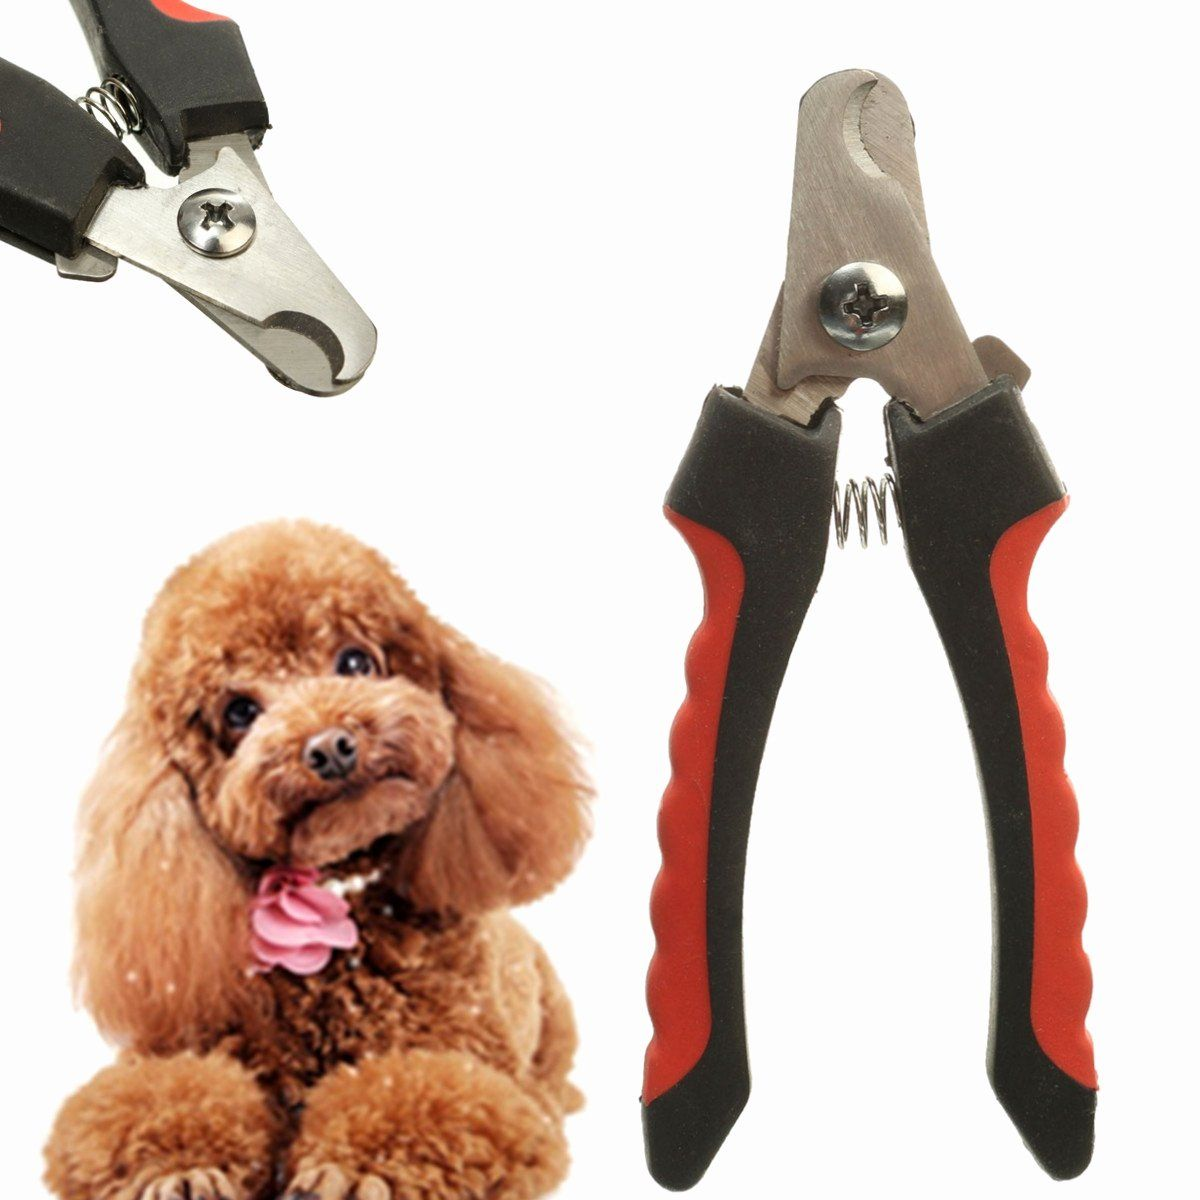 Dog Nail Clippers Walmart in 2020 Dog grooming tools